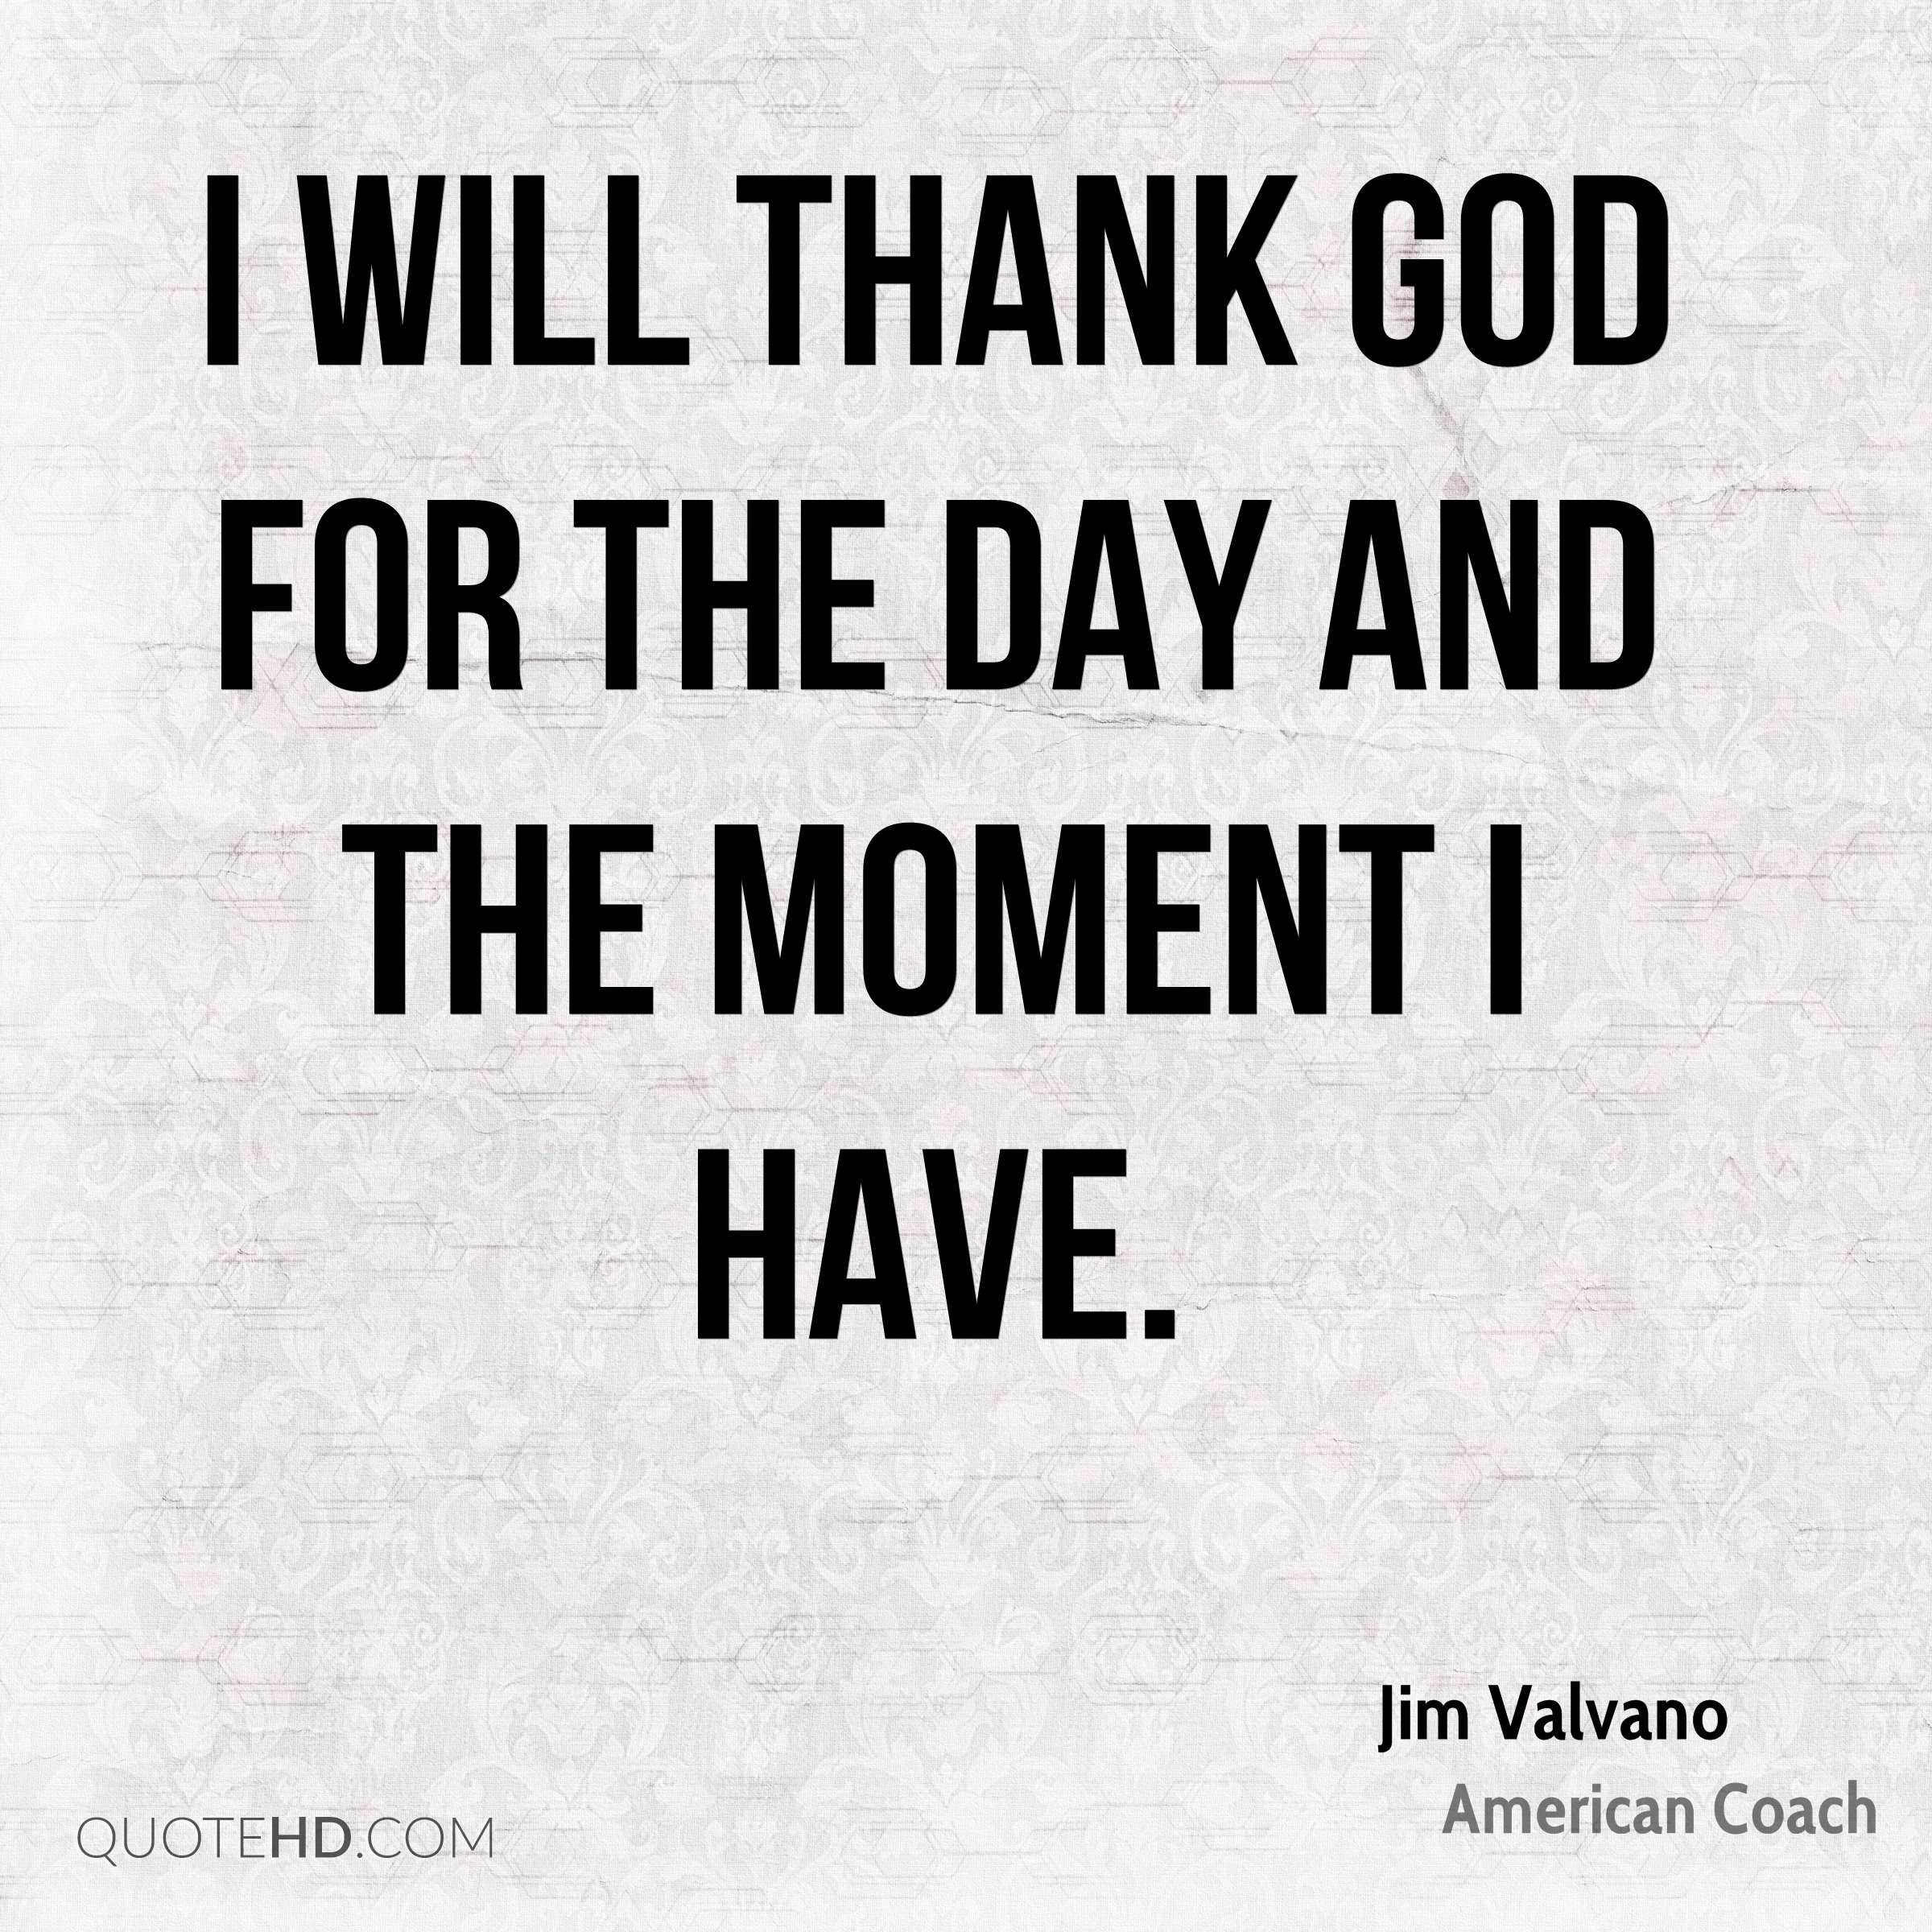 Jimmy V Quotes | Jim Valvano Quotes Quotehd